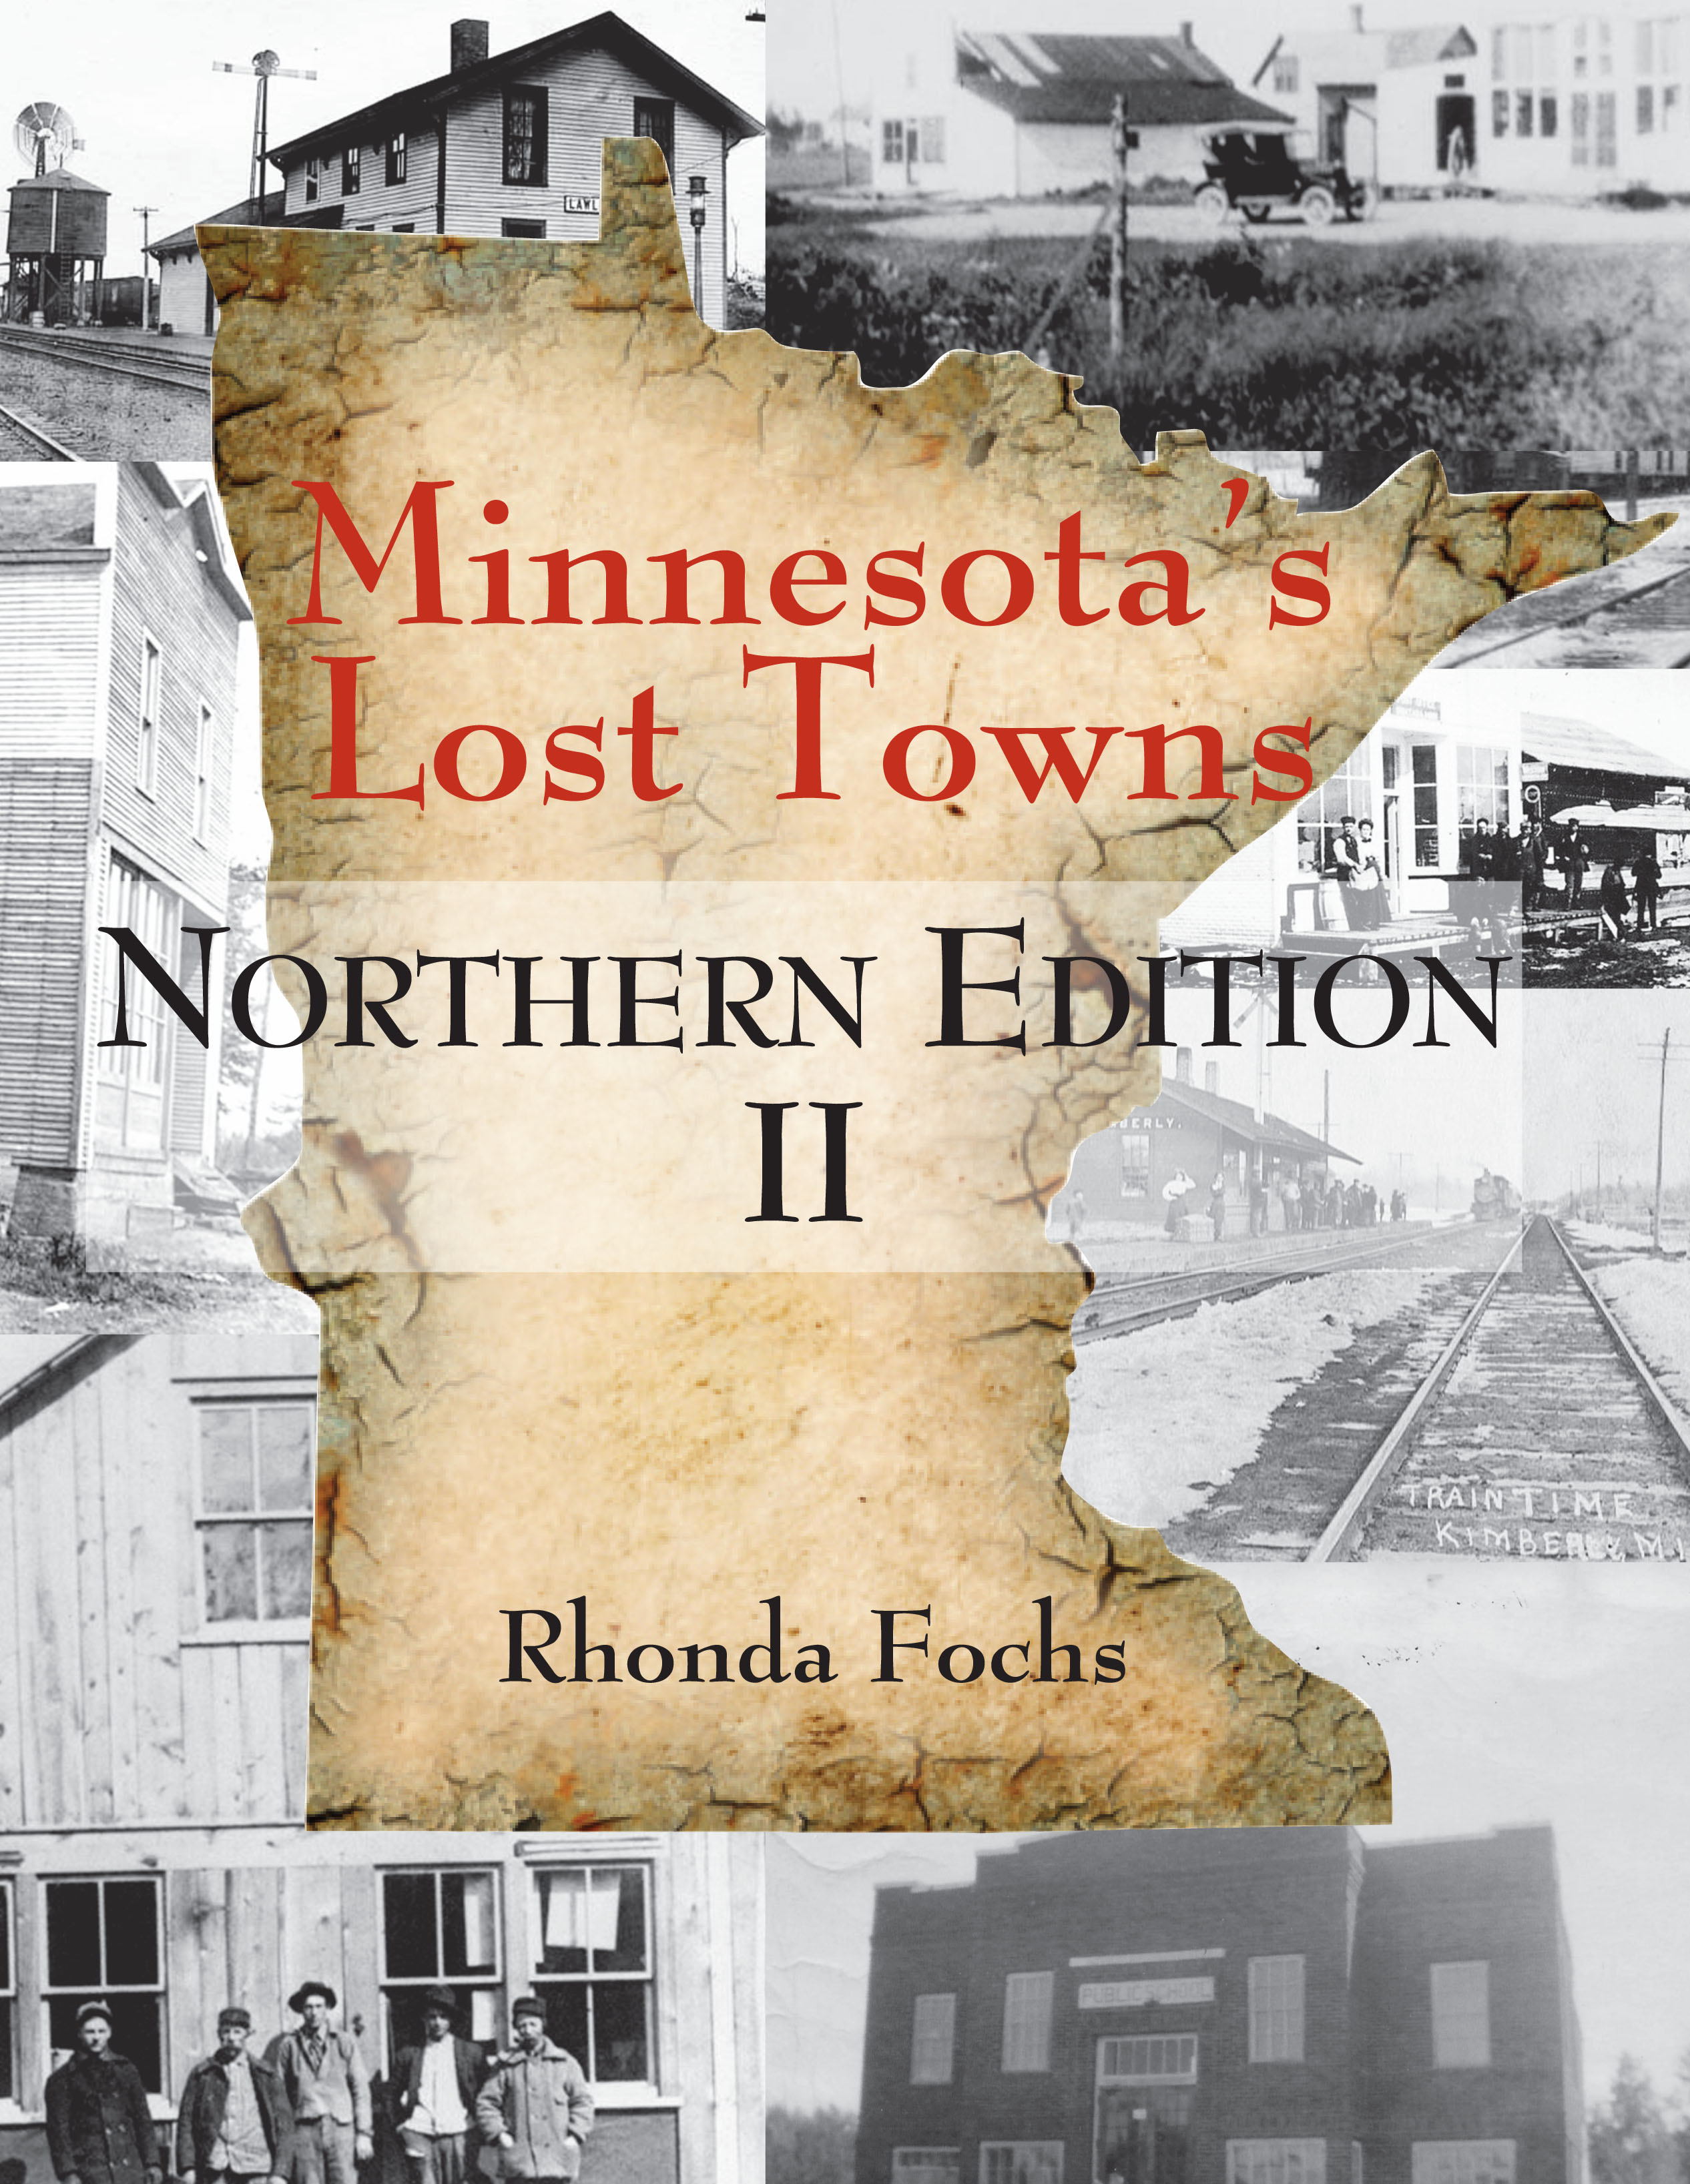 Minnesota's Lost Towns Northern Edition II